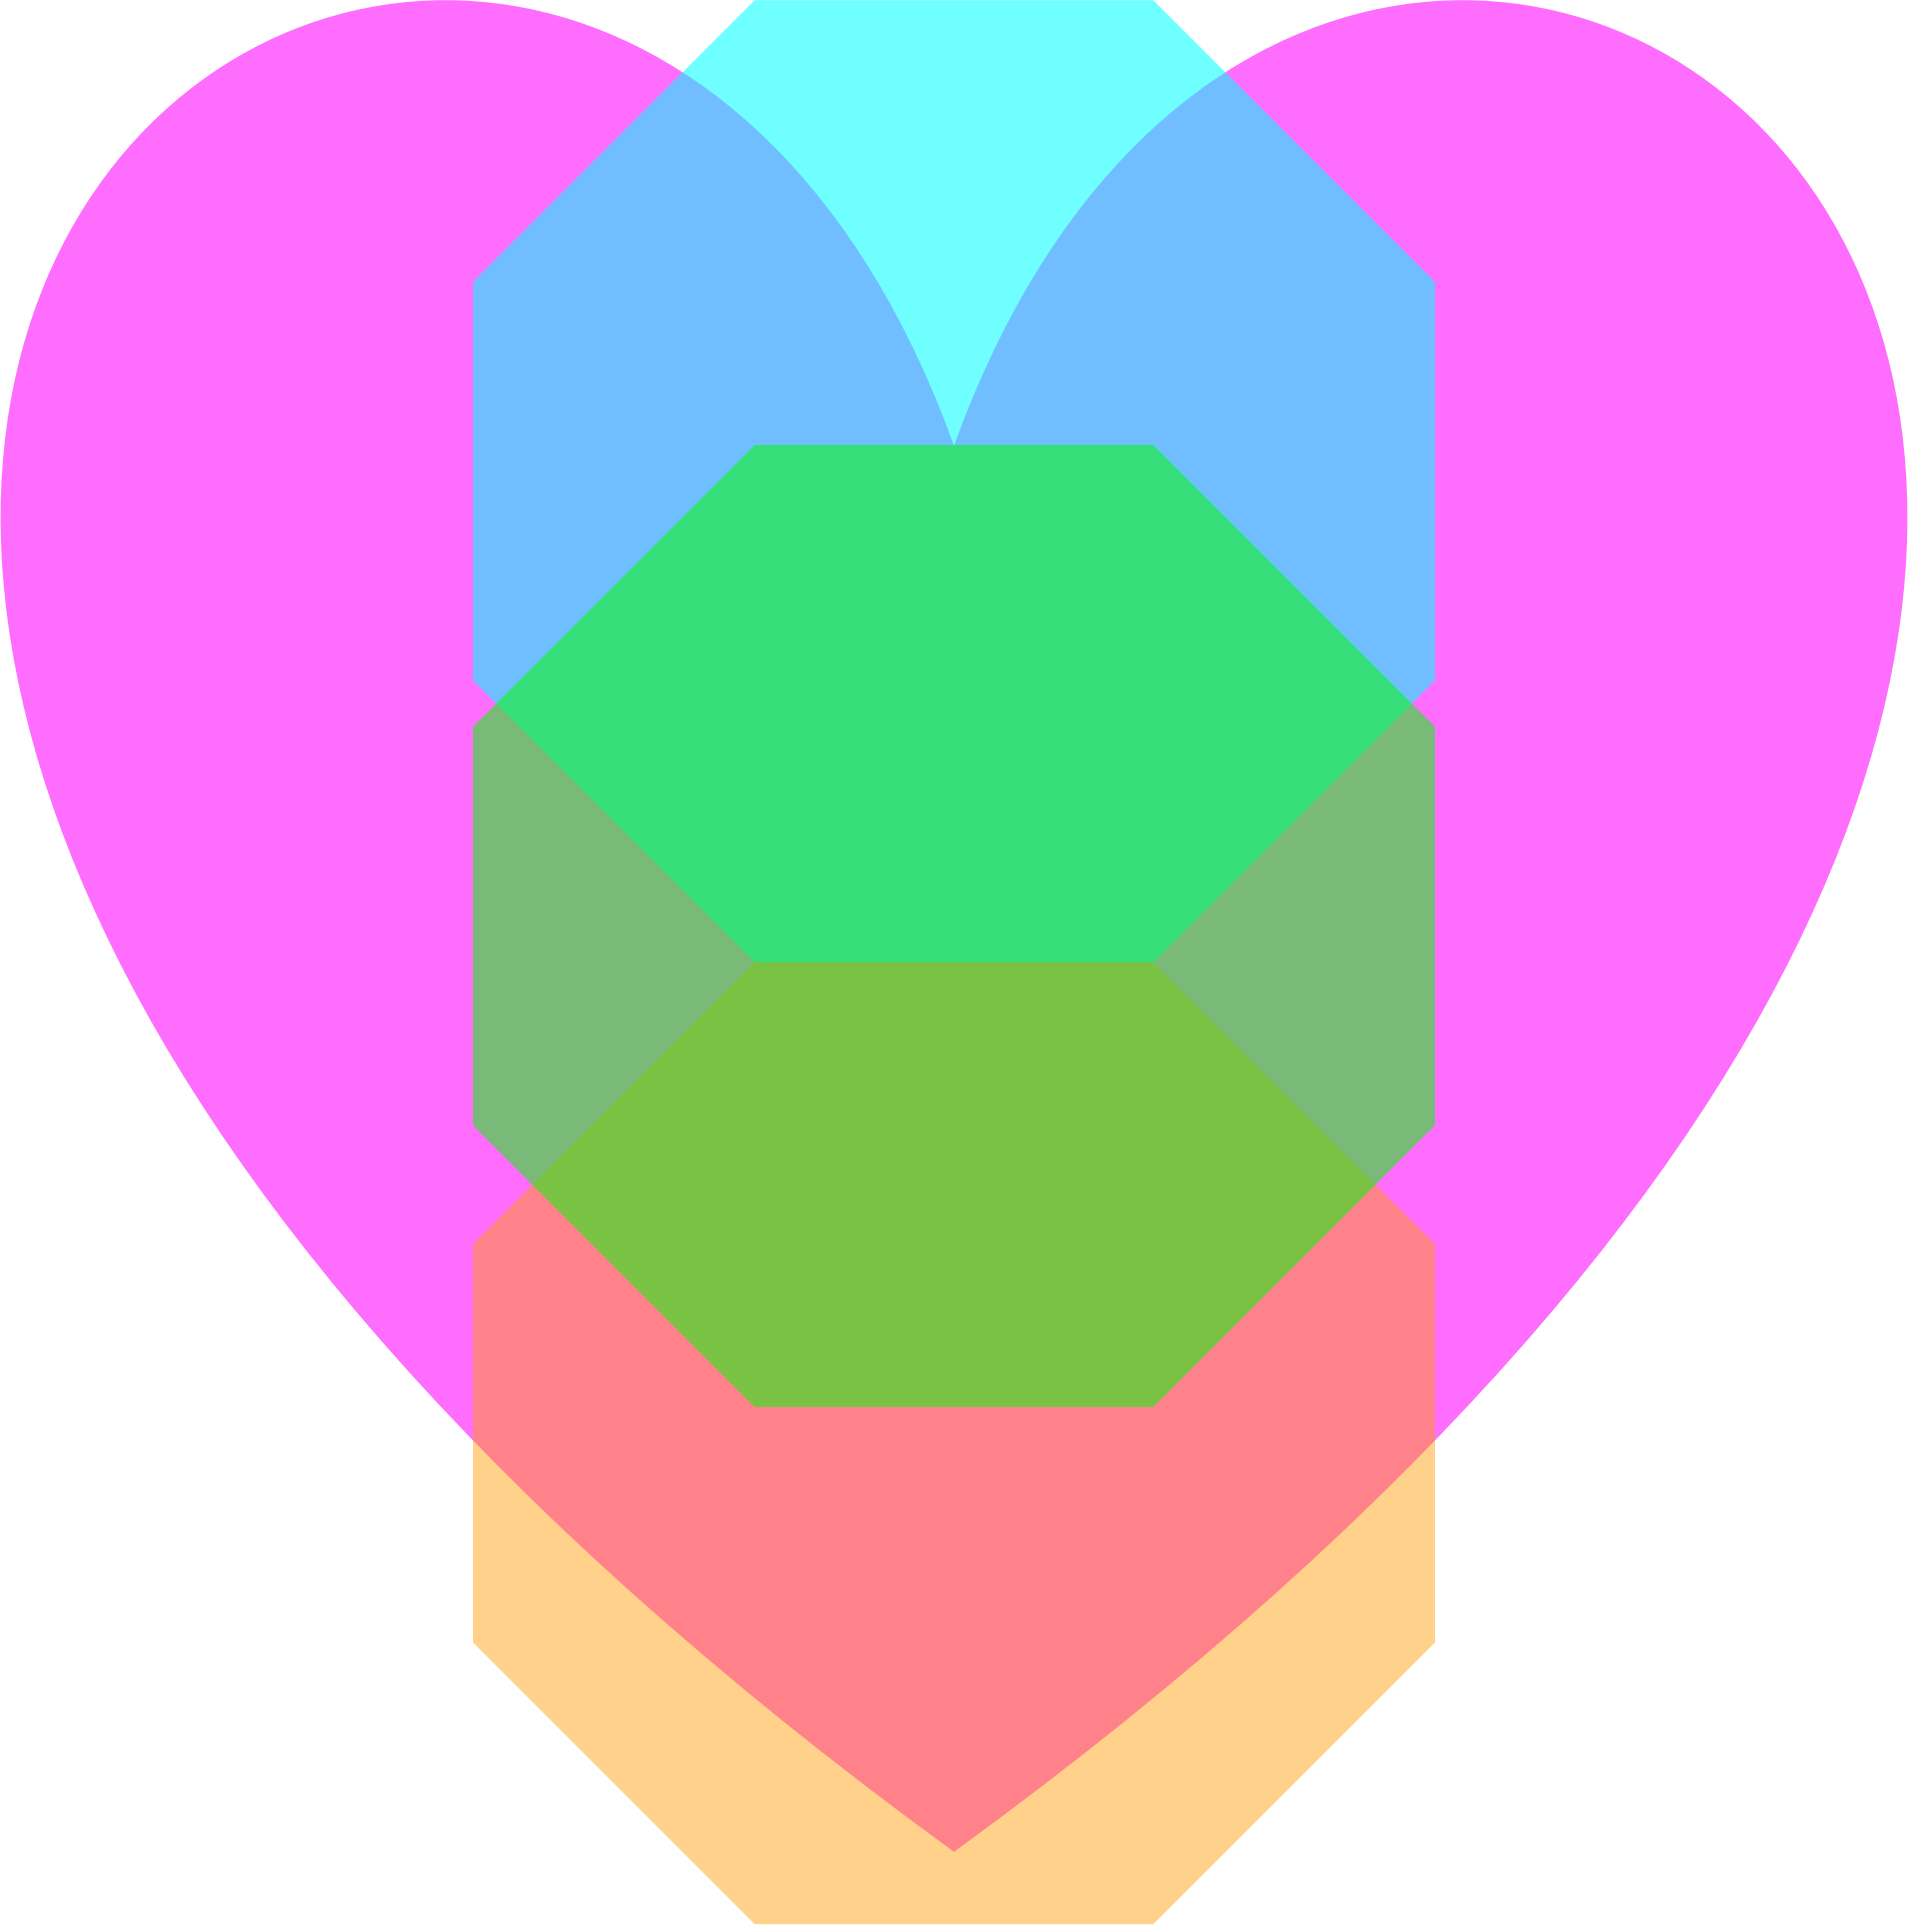 Transparent Magenta Loveheart Octagon Cyan Green Orange  by howlar